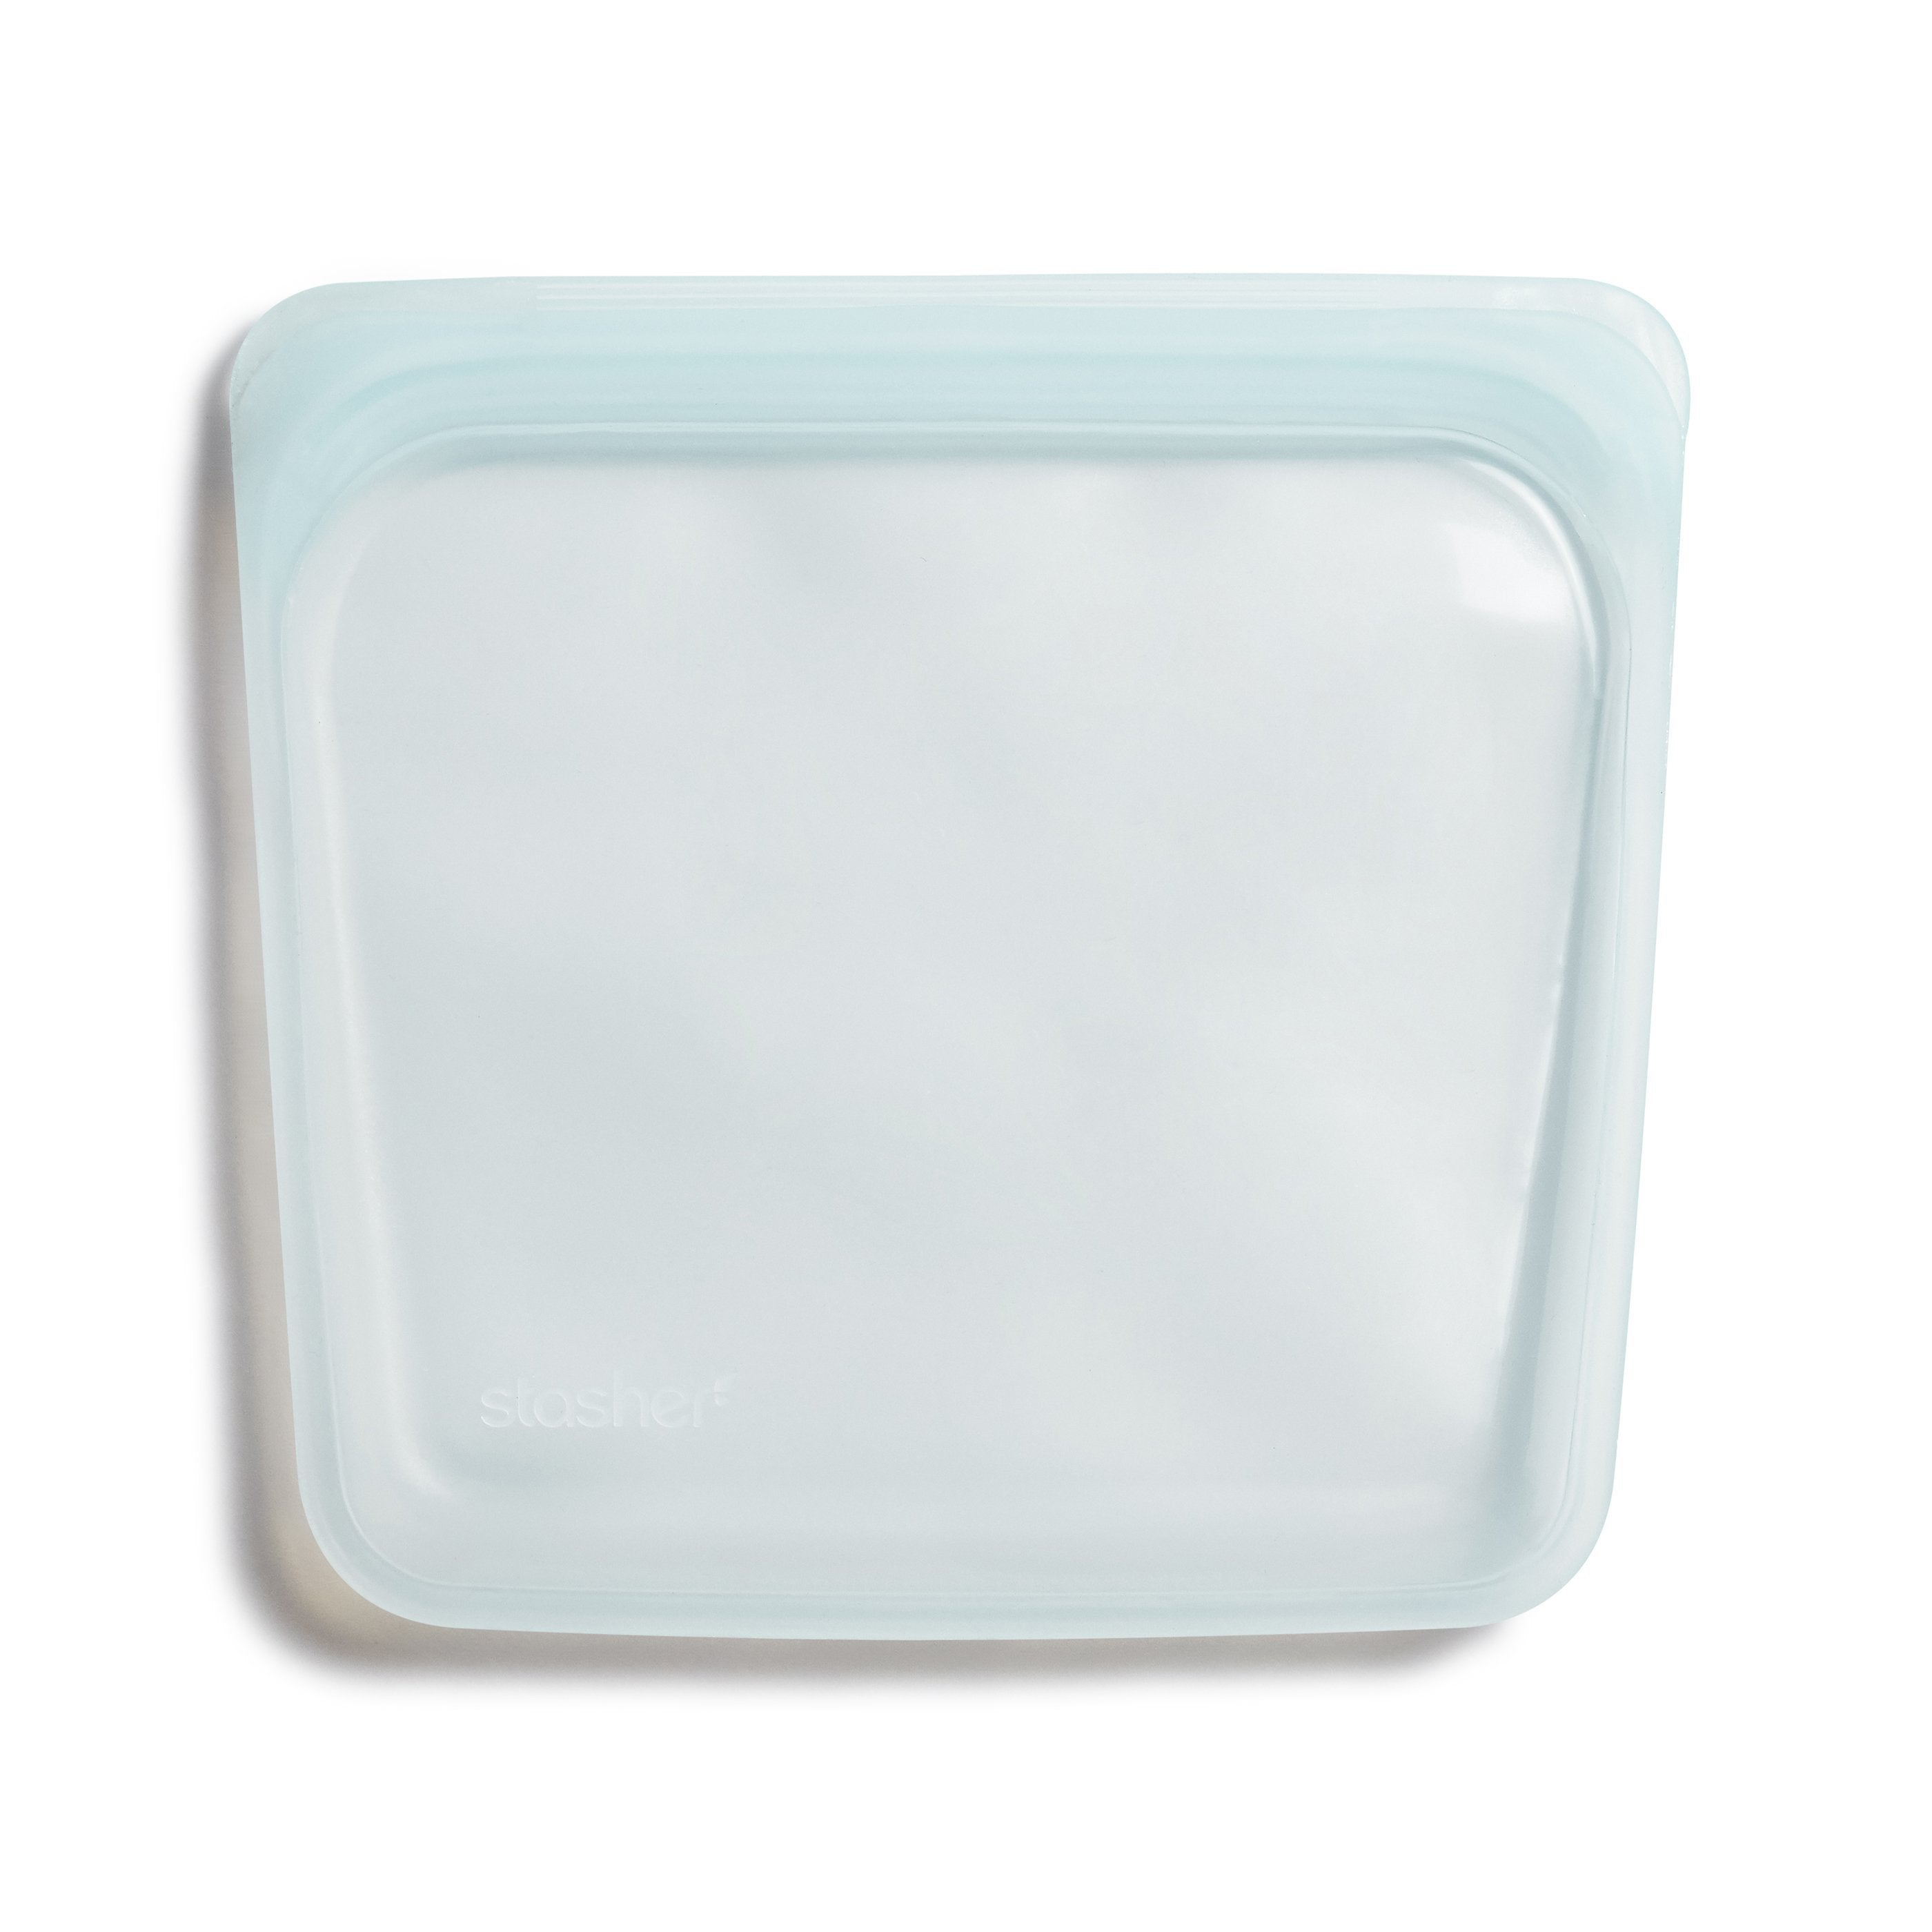 Moonstone Stasher Silicone Sandwich Bag - The Weekly Shop | Plastic Free Online Shop